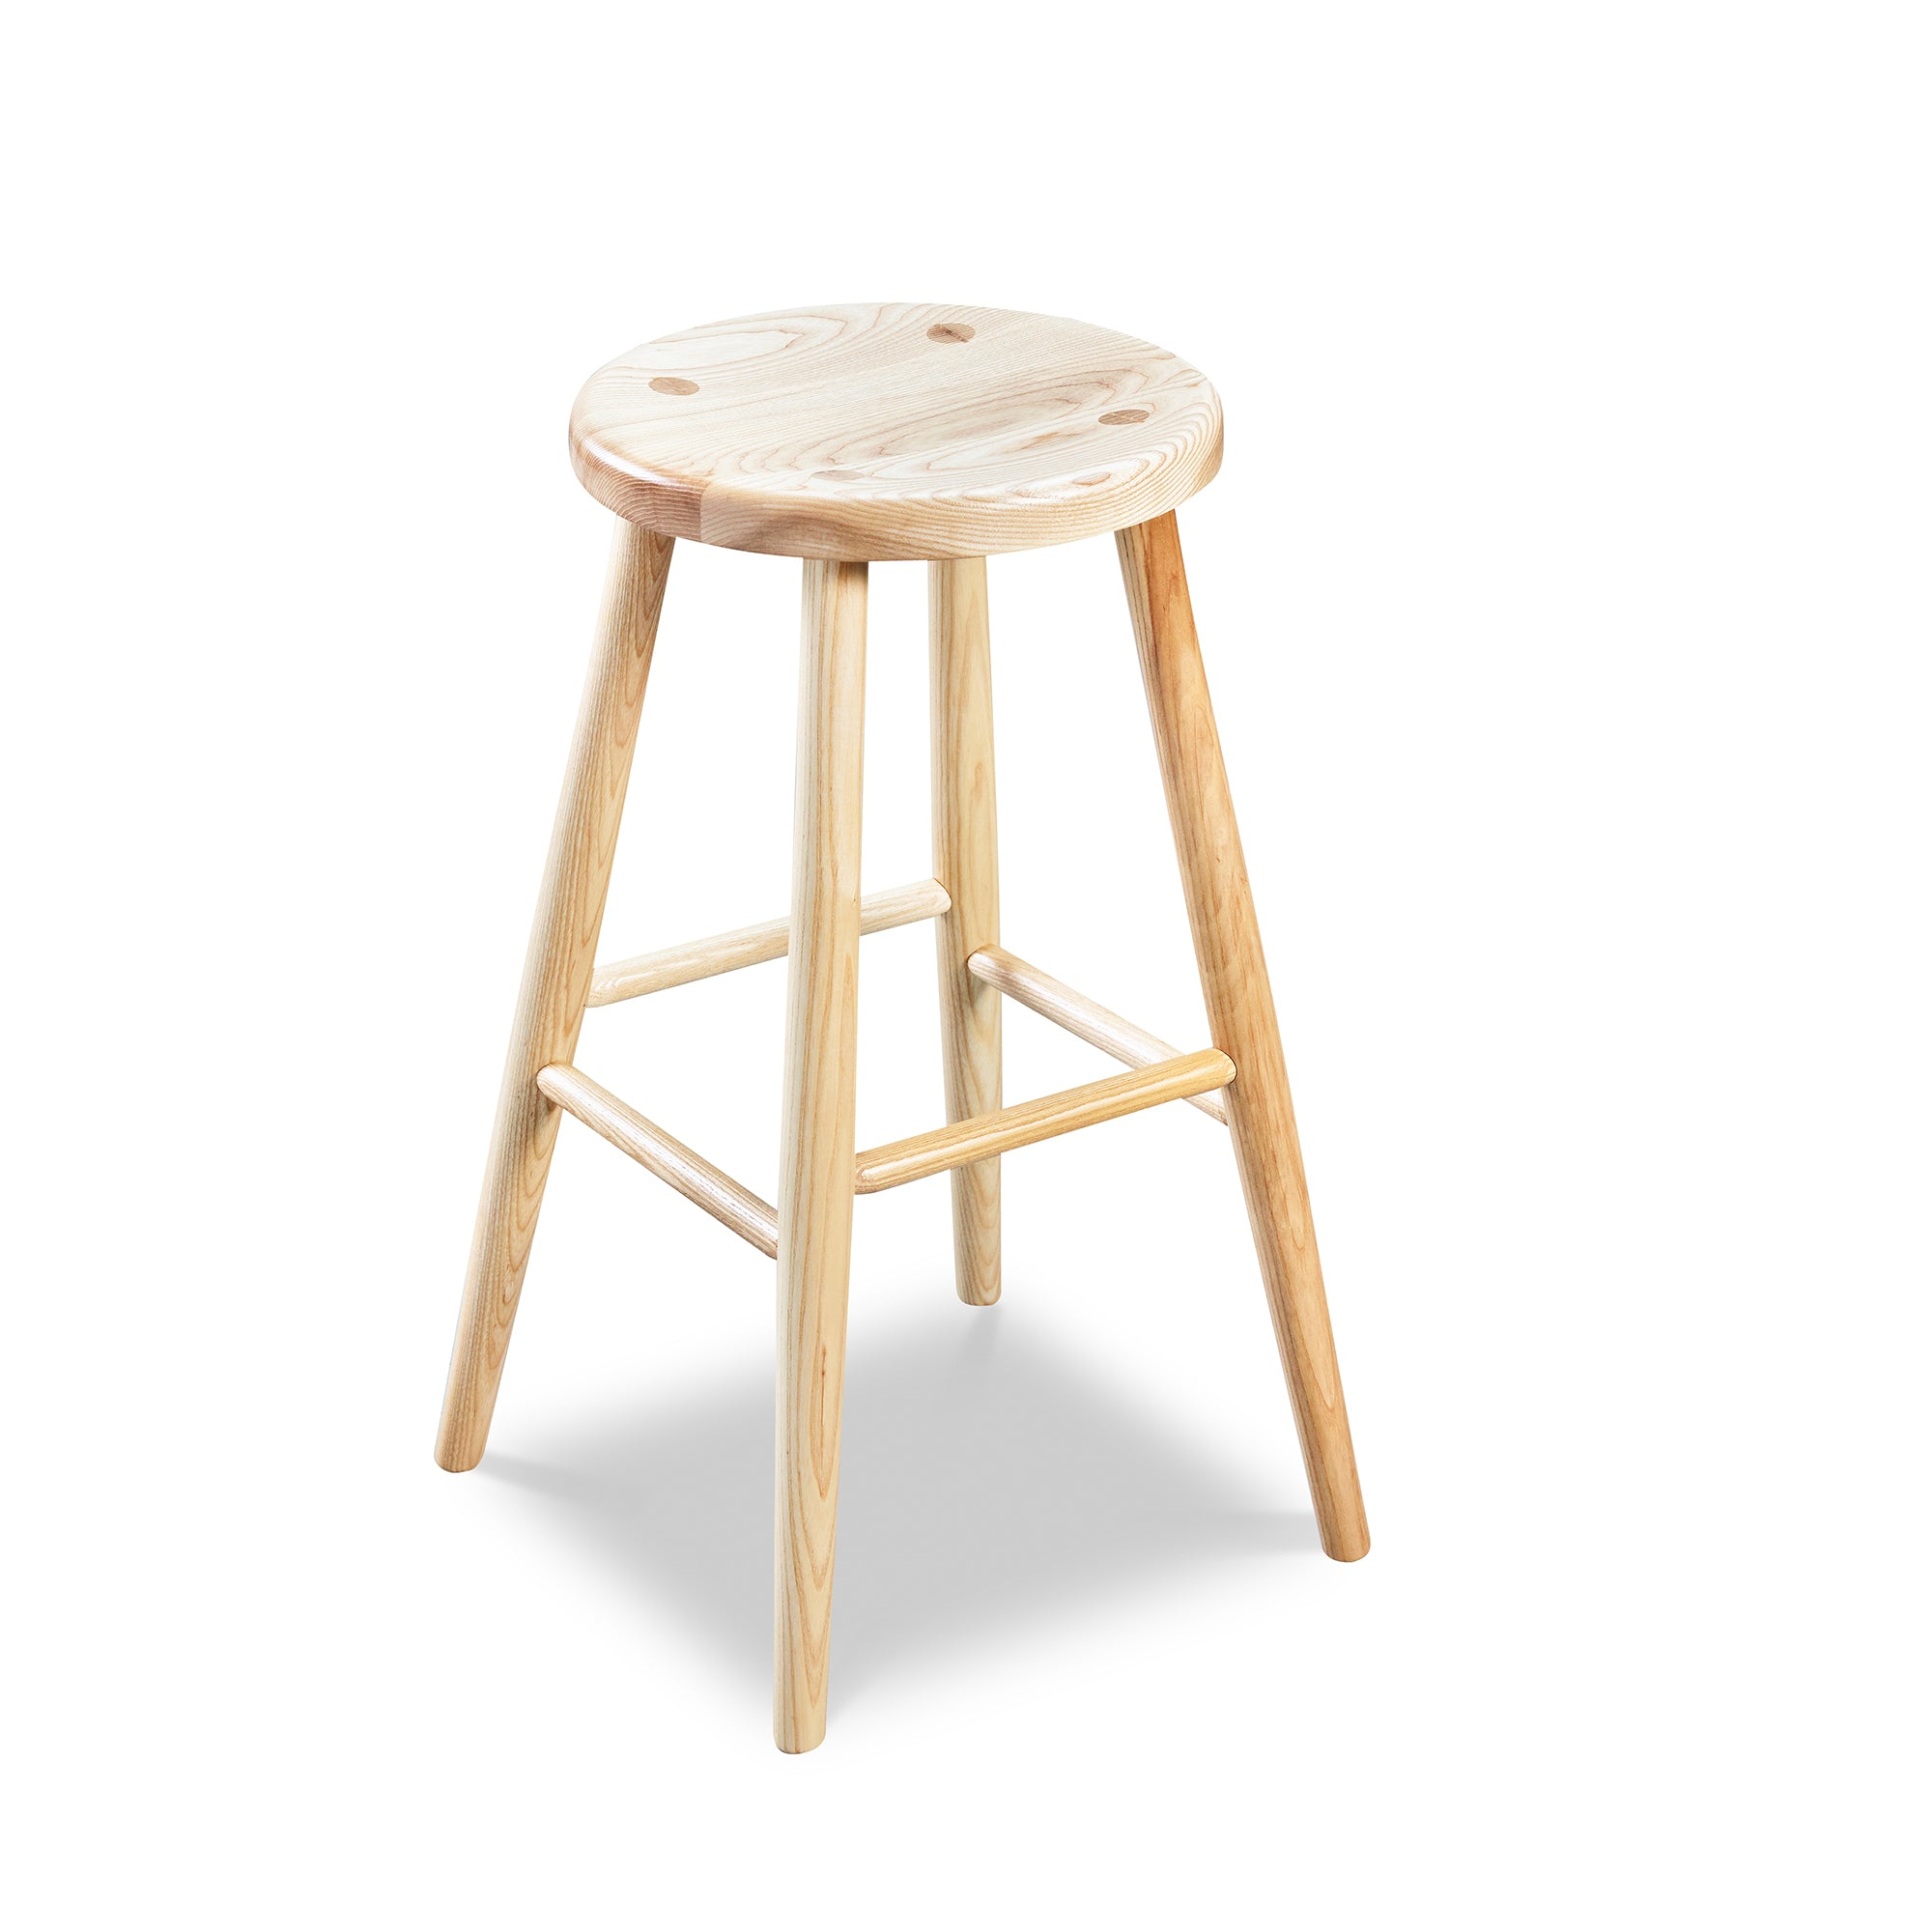 Simple round solid ash wood stool, from Maine's Chilton Furniture Co.